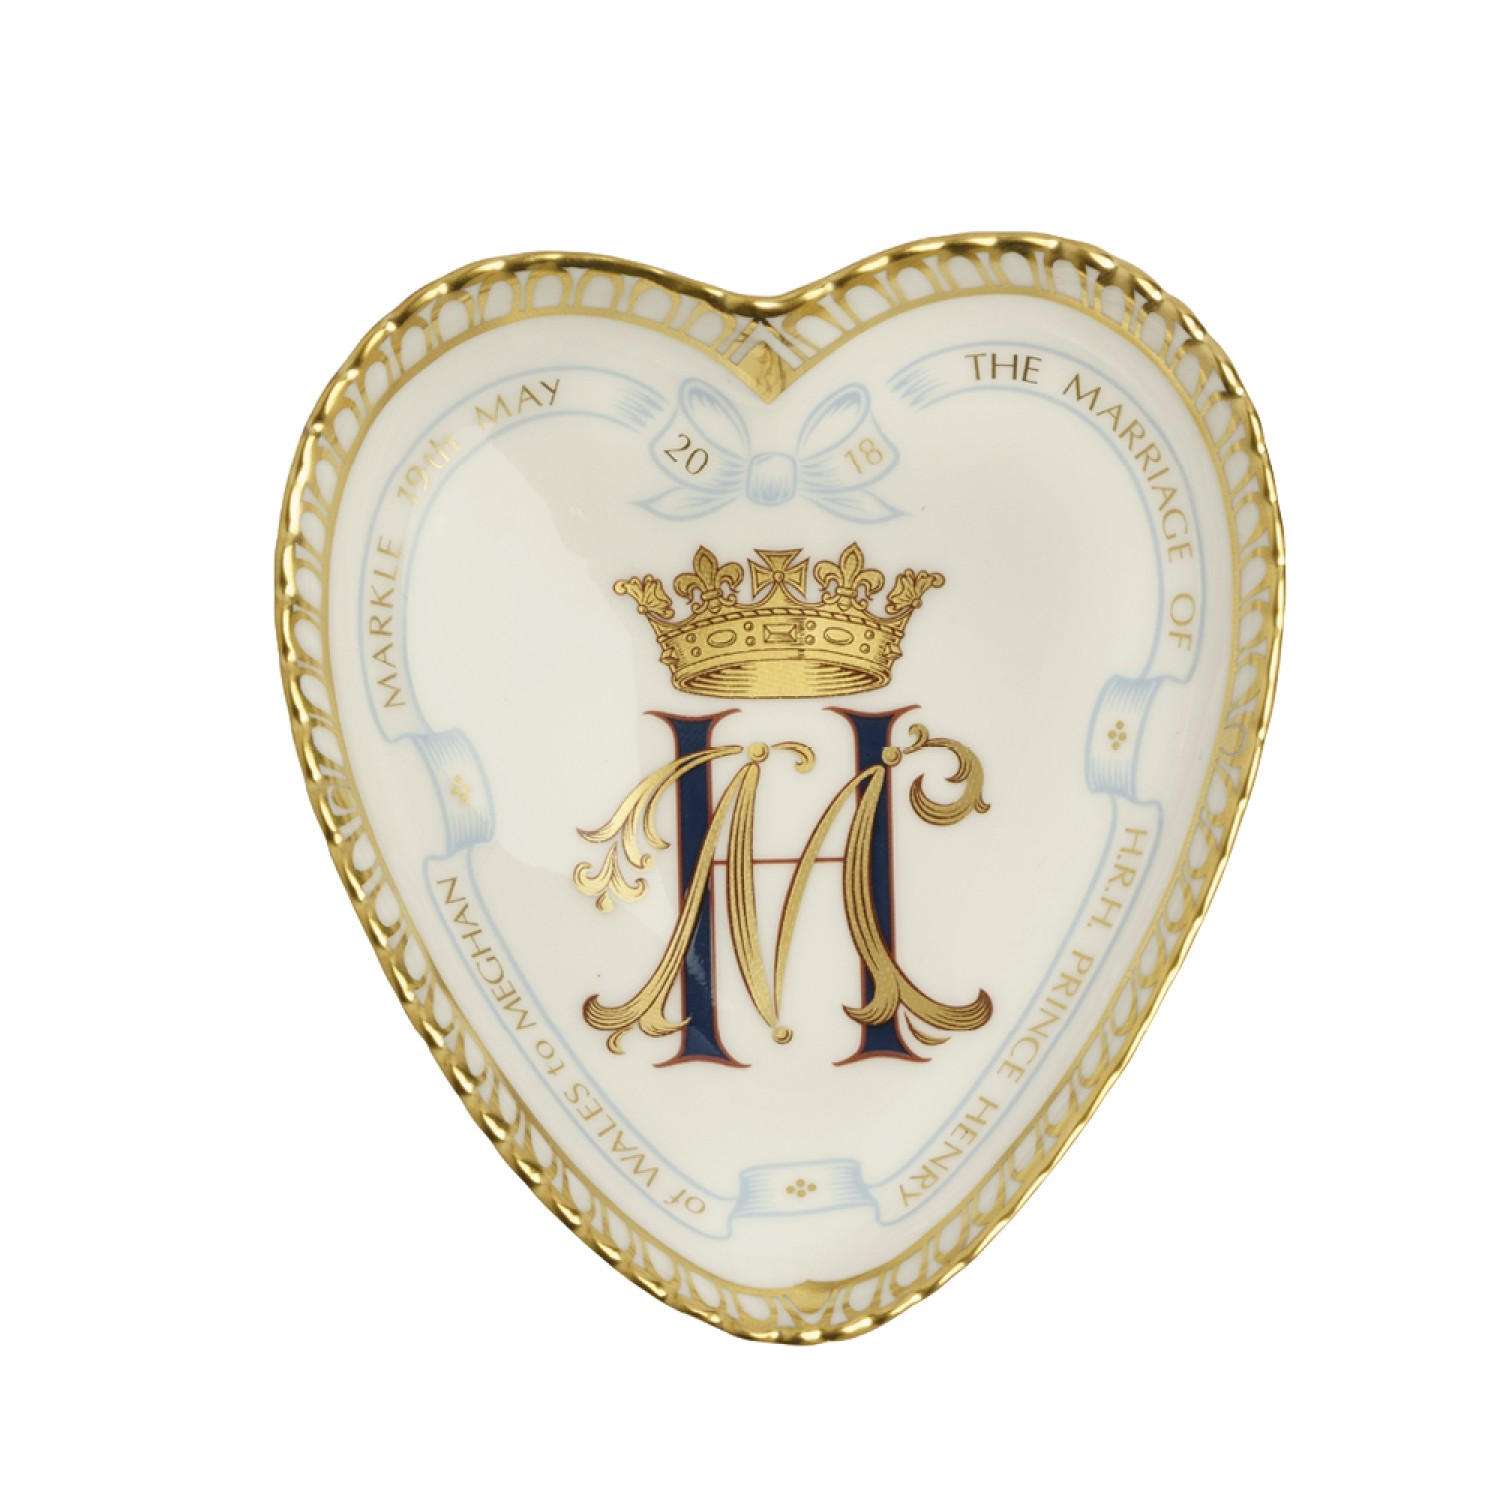 ROYAL WEDDING HEART TRAY